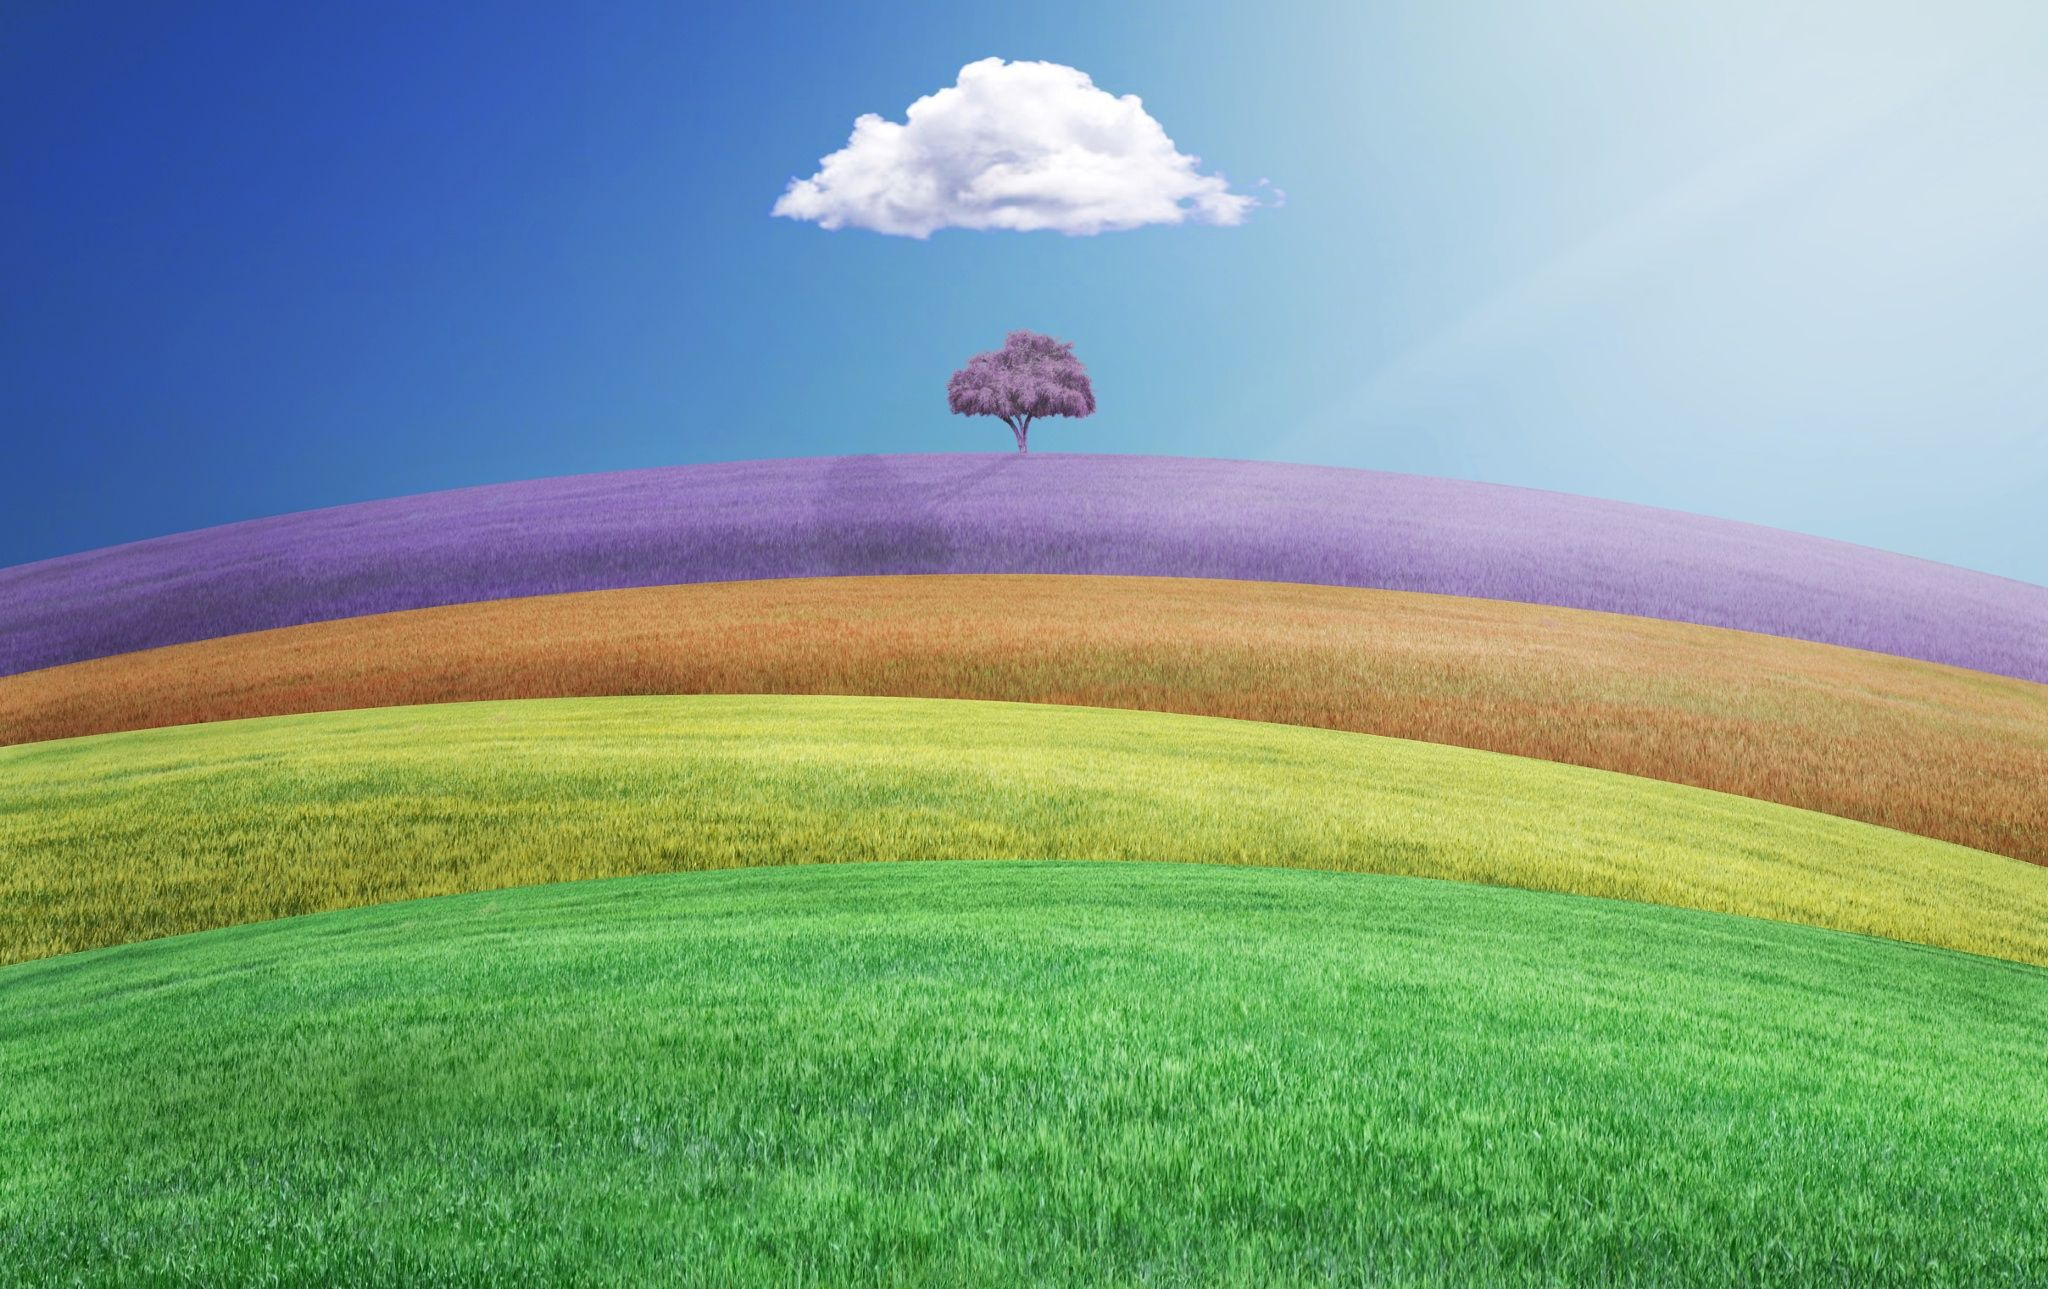 colorful land by Hossein Zare on 500px